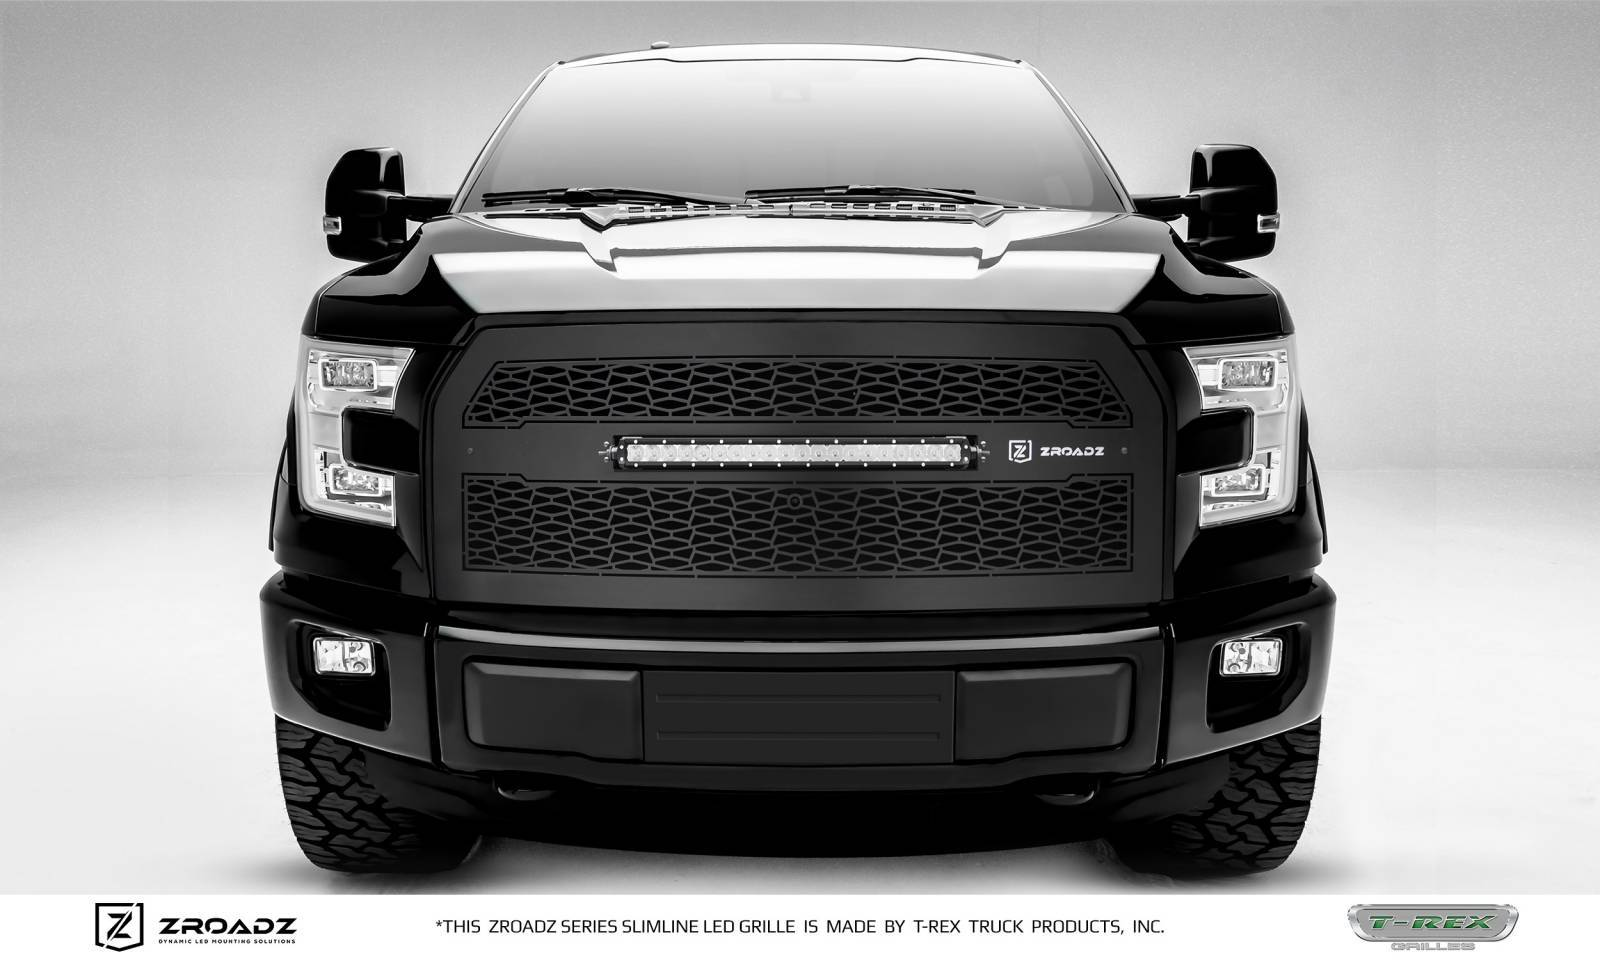 T-REX Ford F150 - ZROADZ Series - w/ Forward Facing Camera - Main Replacement - Grille w/ One 20 Inch Slim Line Single Row LED Light Bar - Includes Universal Wiring Harness - Part # Z315741